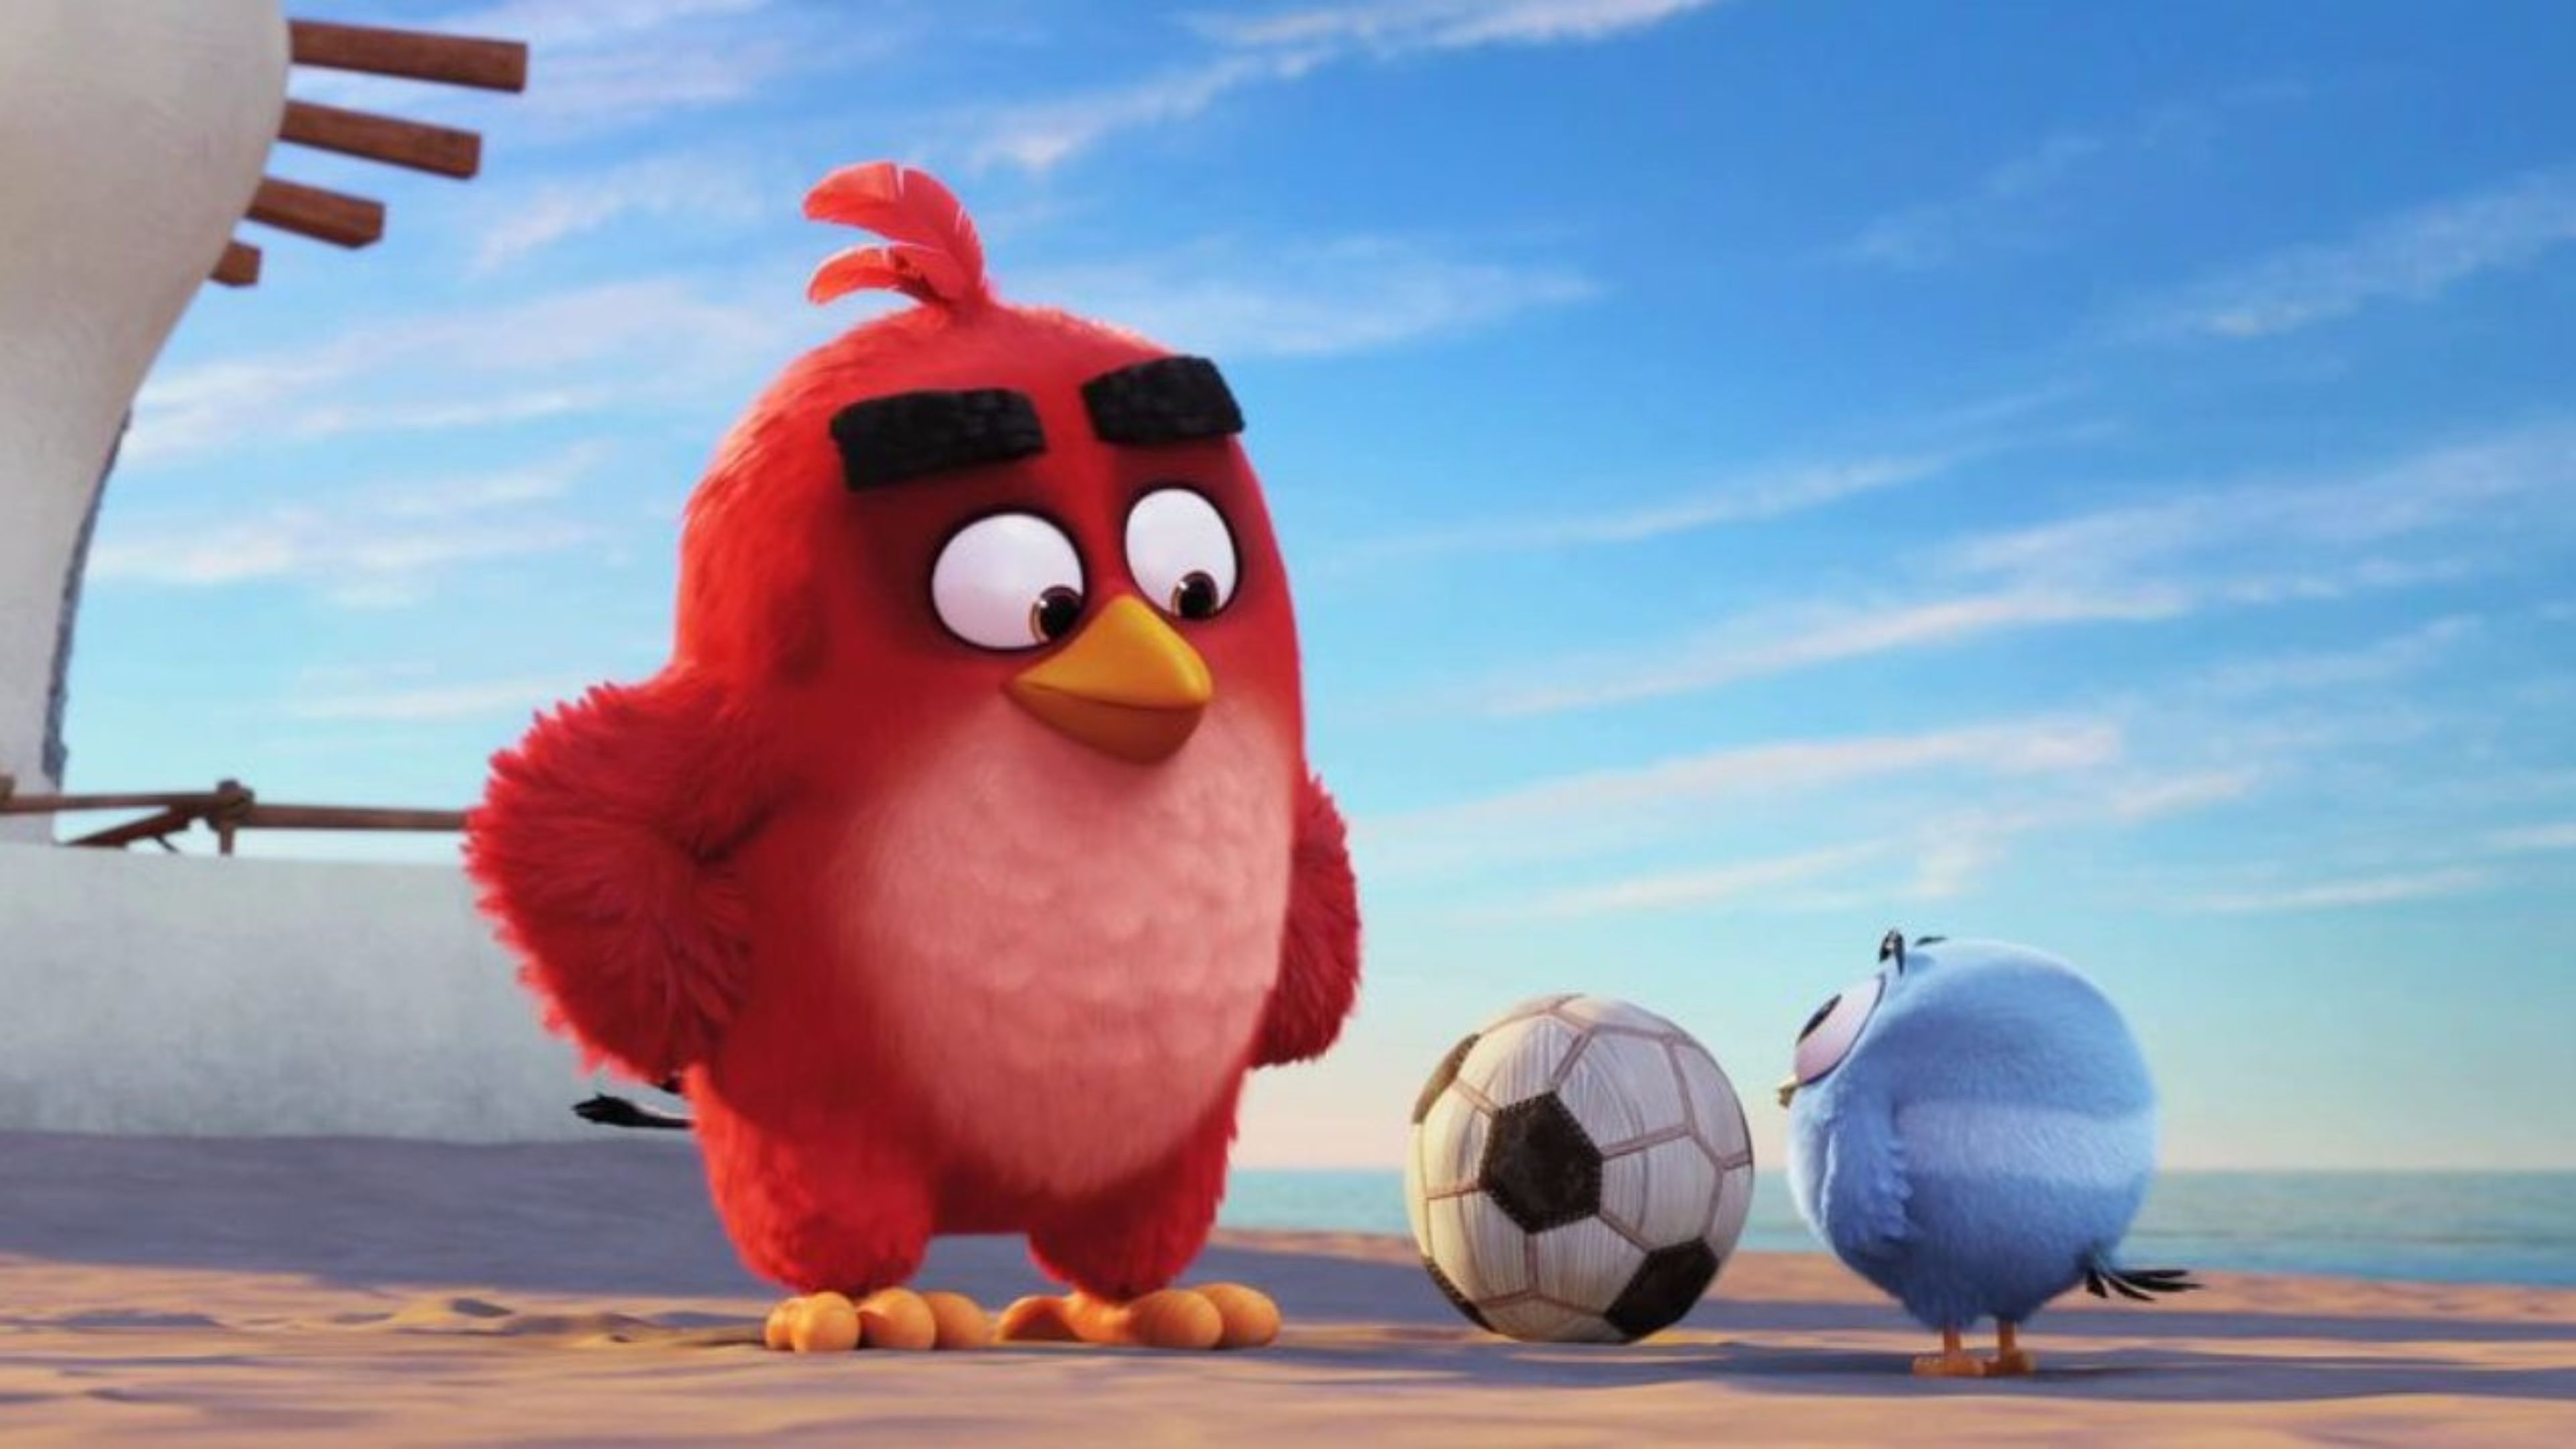 Angry Birds Movie Wallpapers Wallpaper Cave